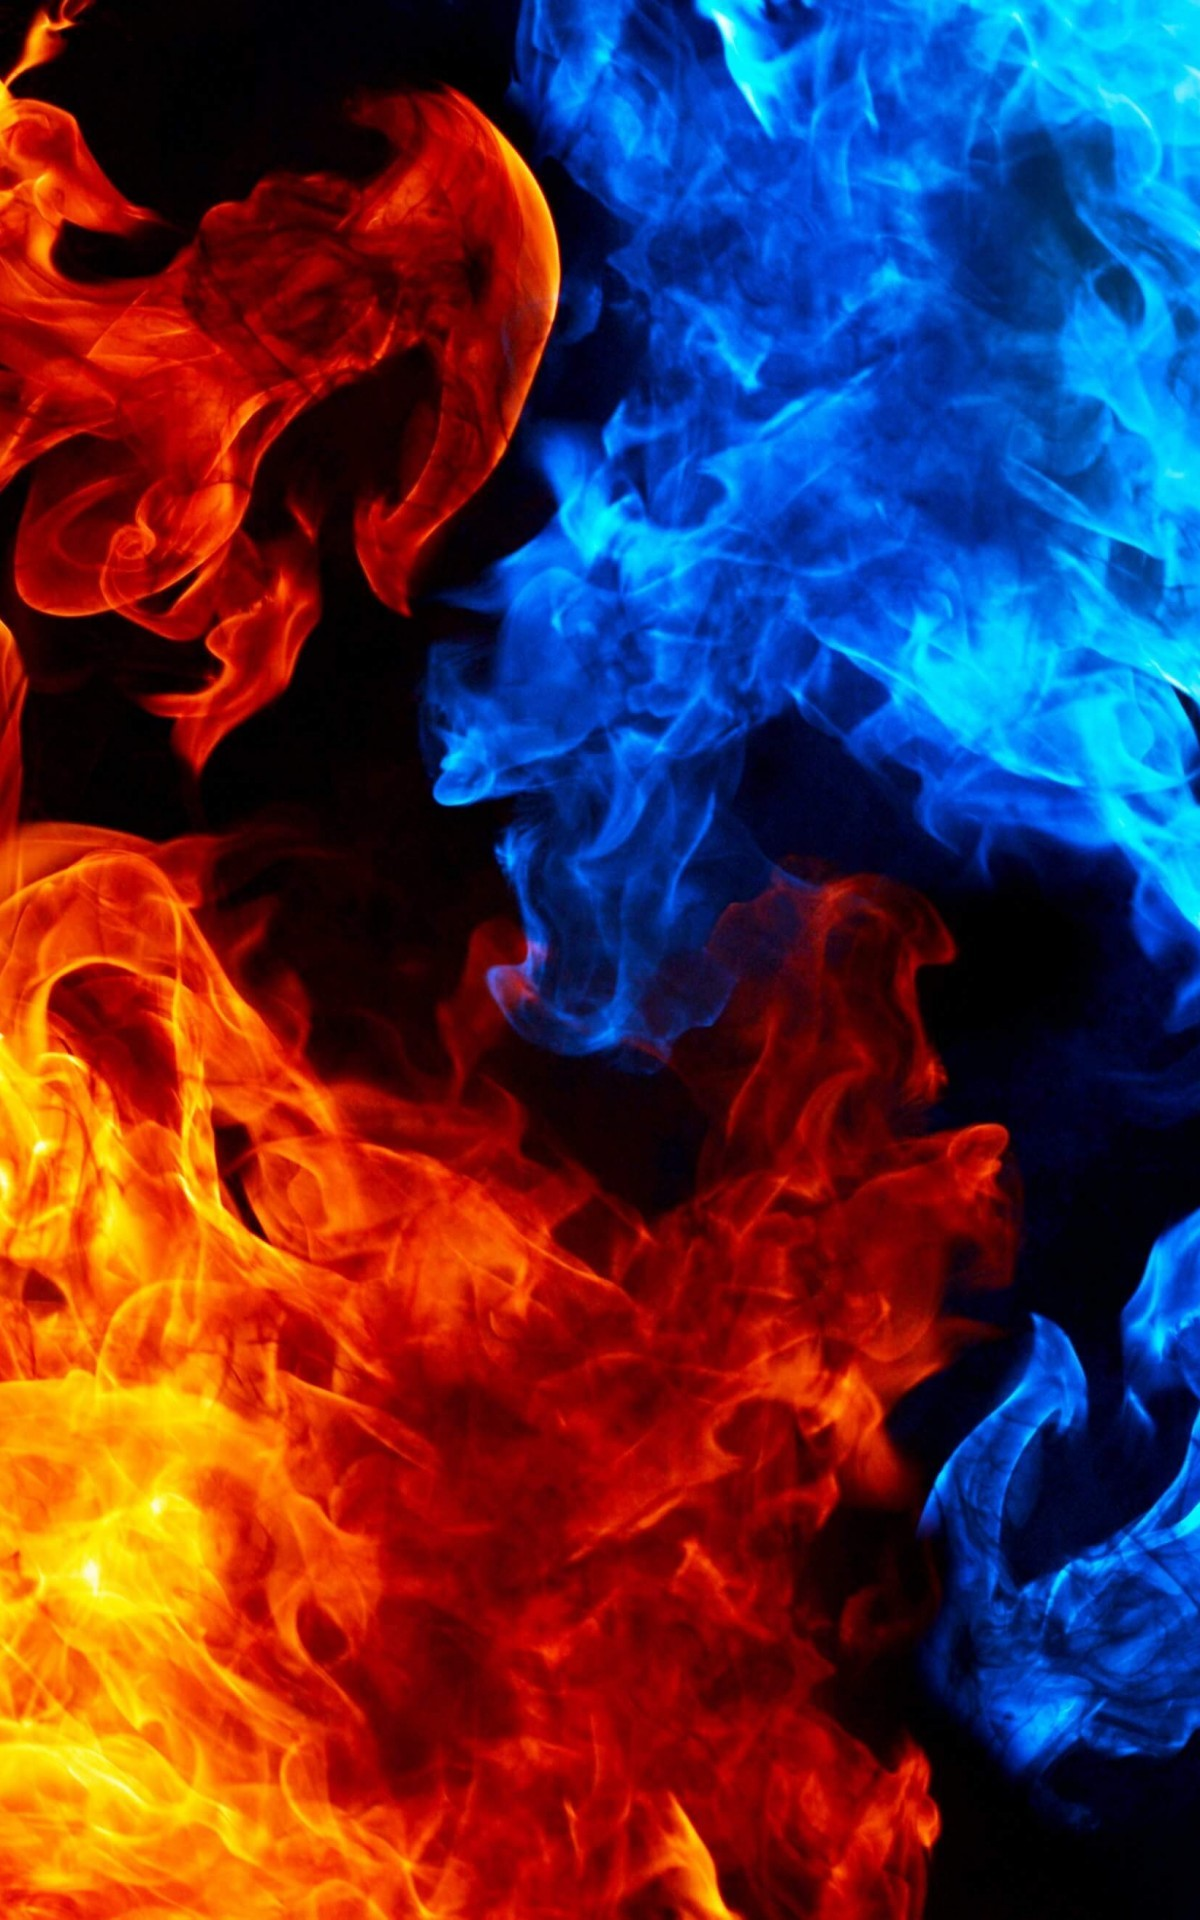 Blue and red fire wallpaper 65 images - Blue fire wallpaper ...